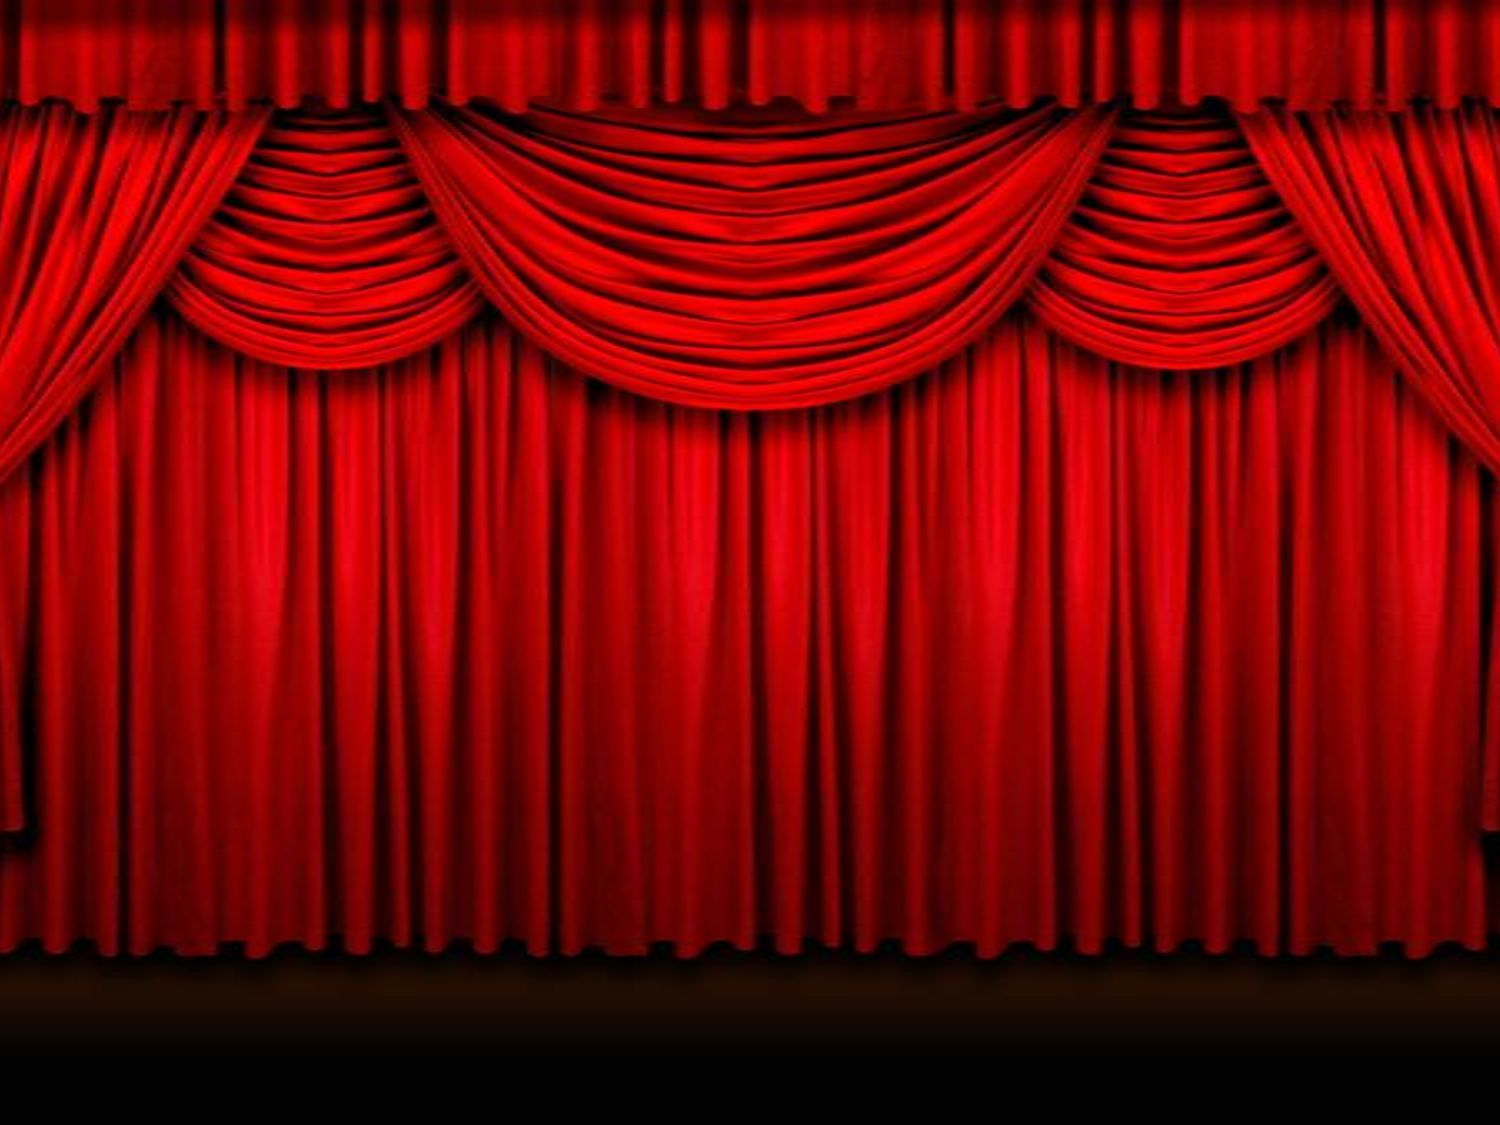 Theatre curtains png - Theater Curtain 7 Blue Theater Curtains 11915 Curtains